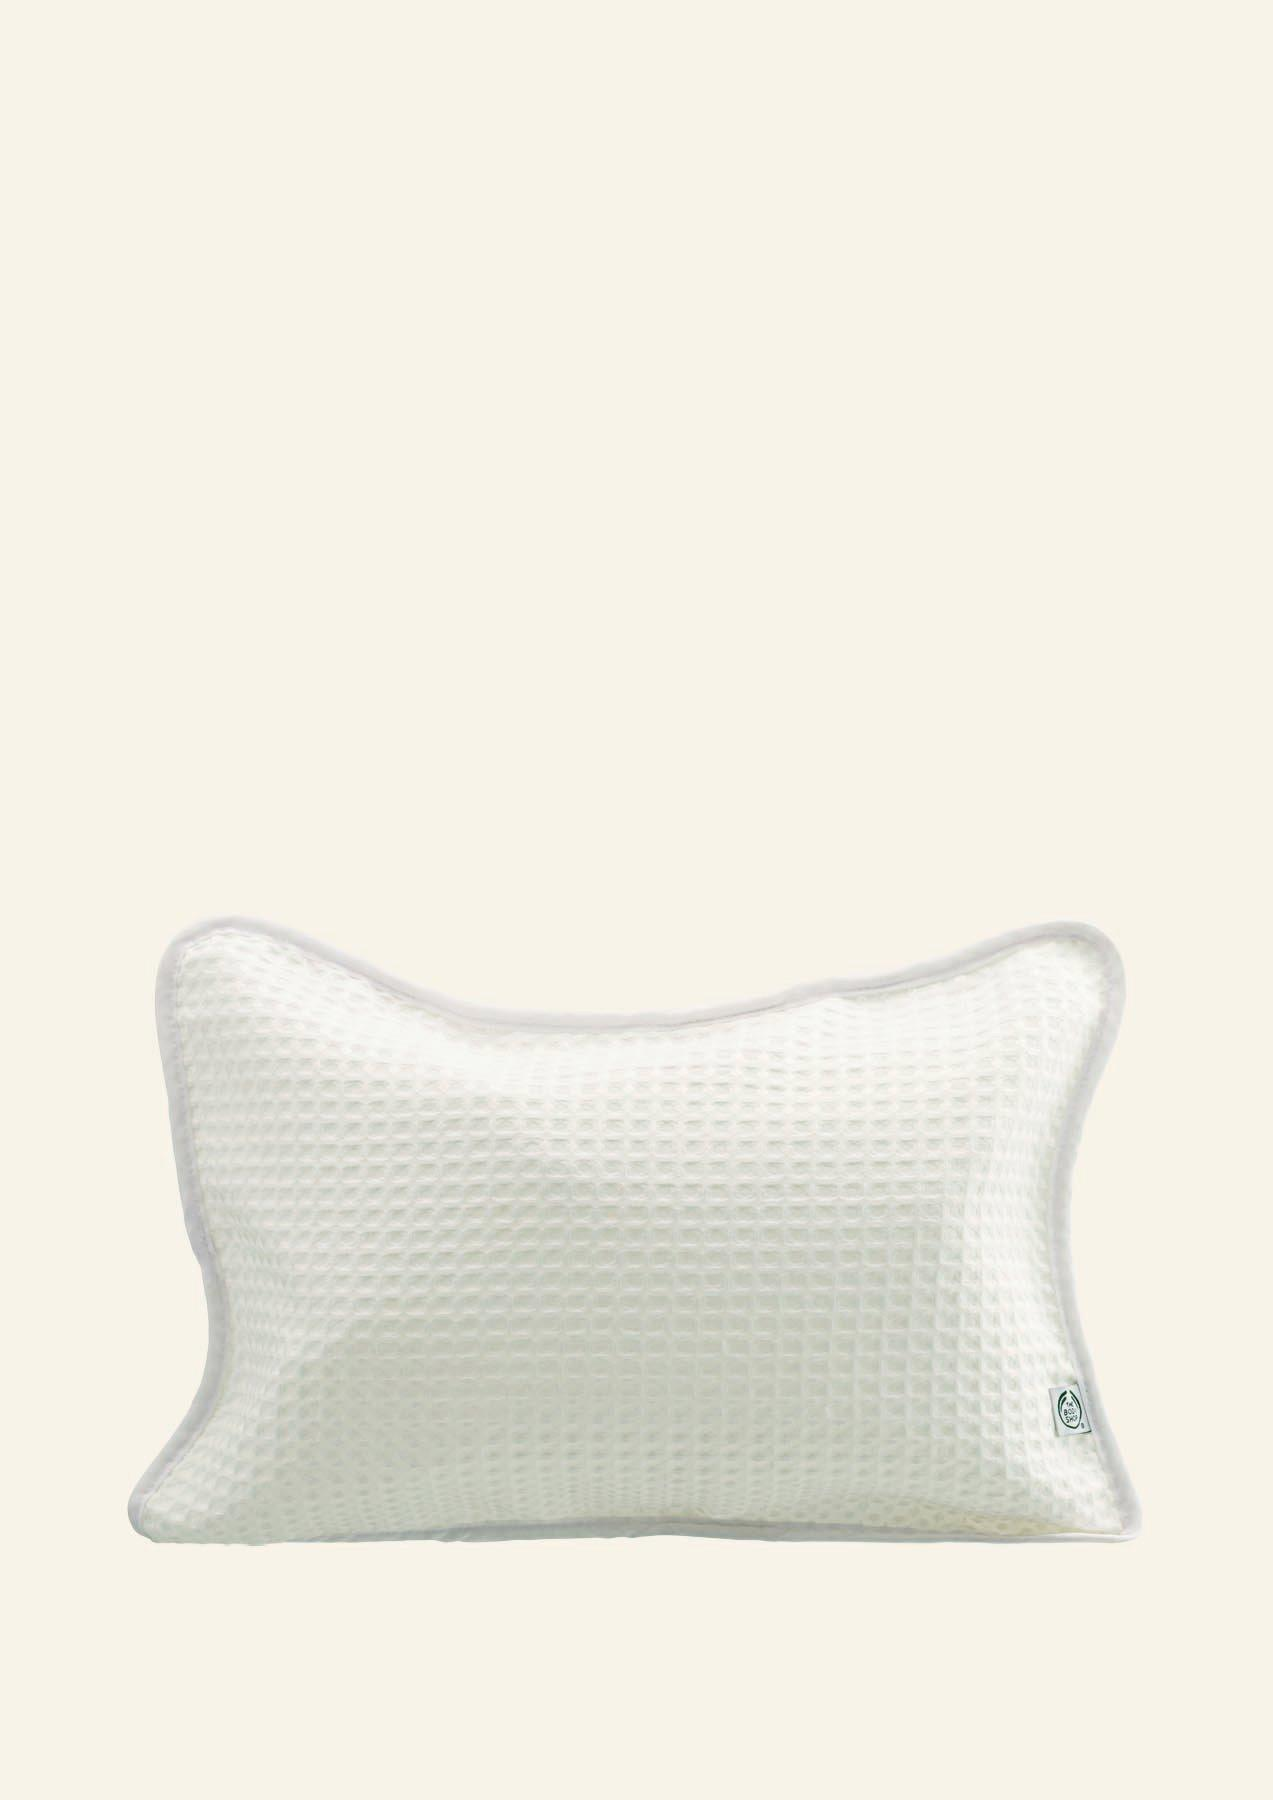 bath pillow inflatable beauty discounts offers